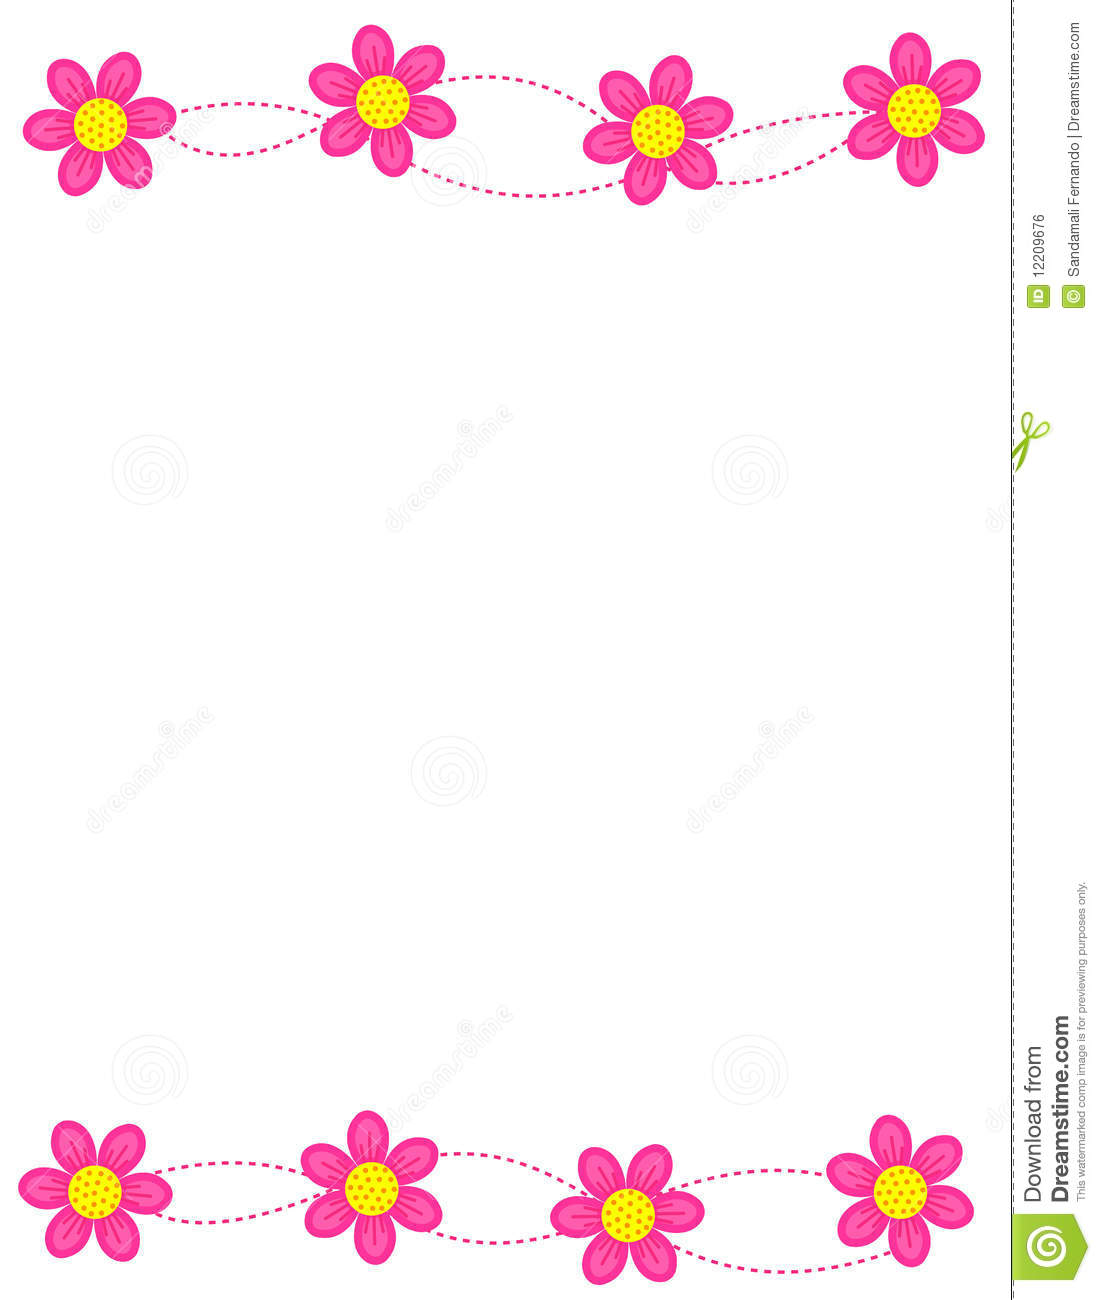 Floral Border Frame Royalty Free Stock Image